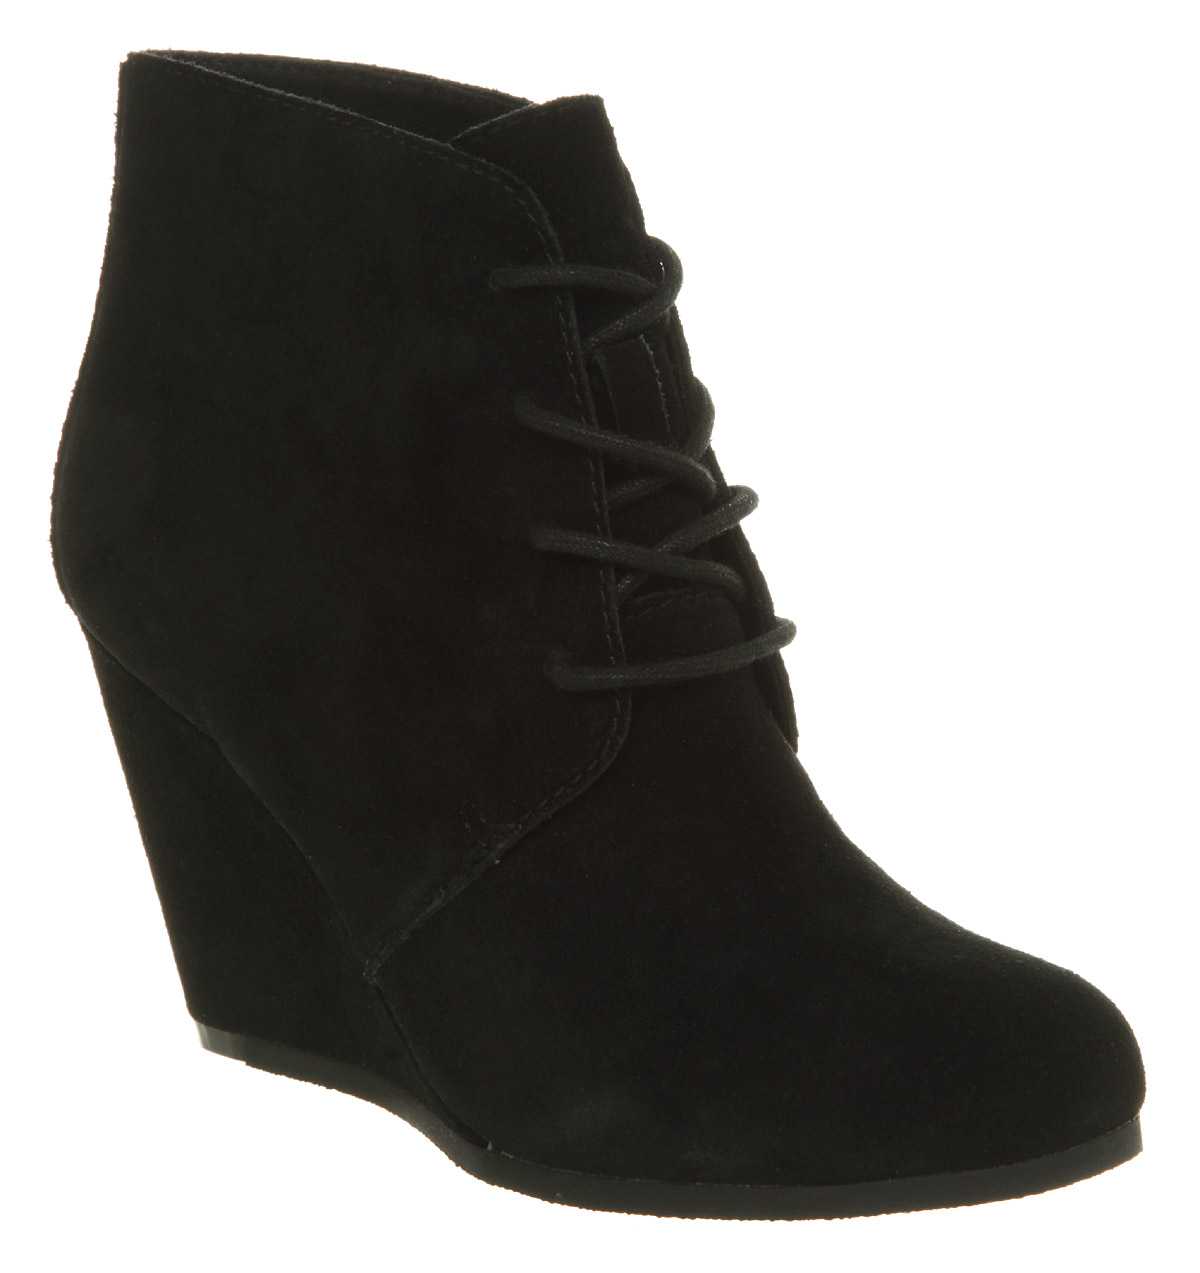 91055ed8328 Lyst - Office Nova Lace Up Wedge Black Suede in Black